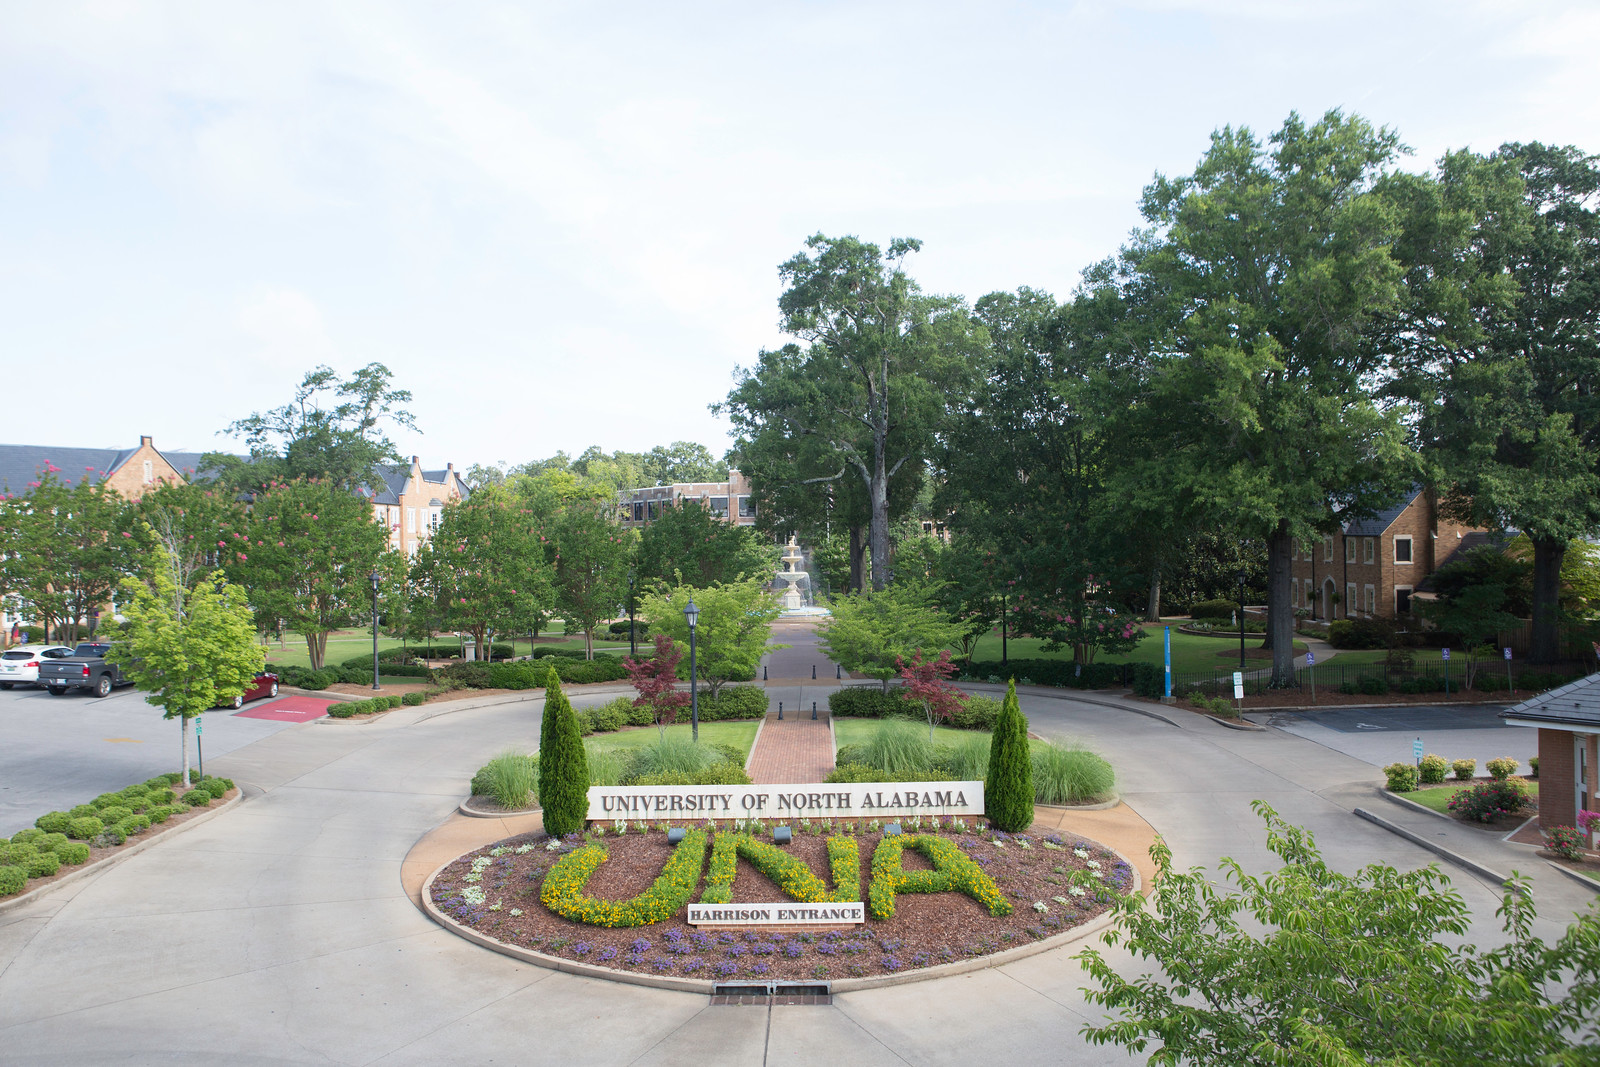 The entrance of the University of North Alabama.